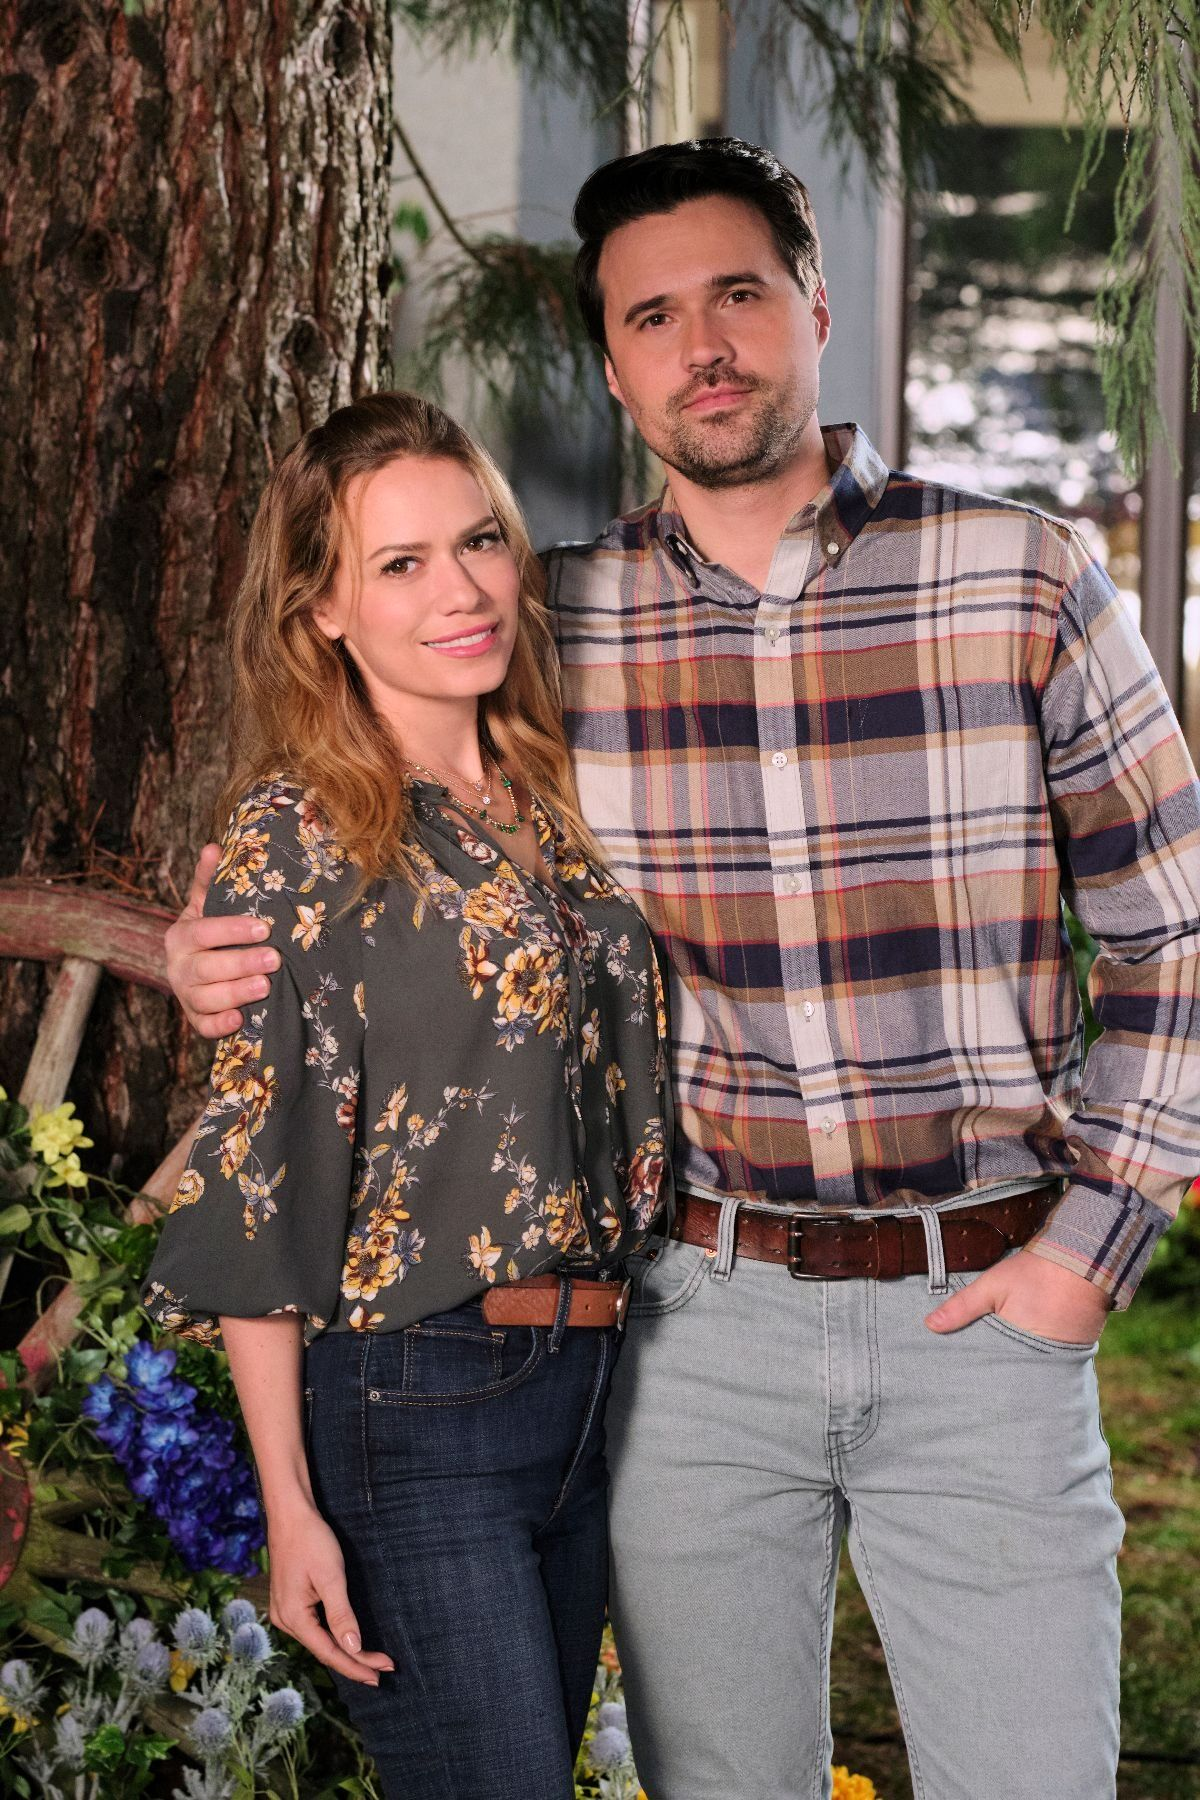 Get Your First Look at Hallmark's New Movie, 'Just My Type', Premiering March 28, 2020